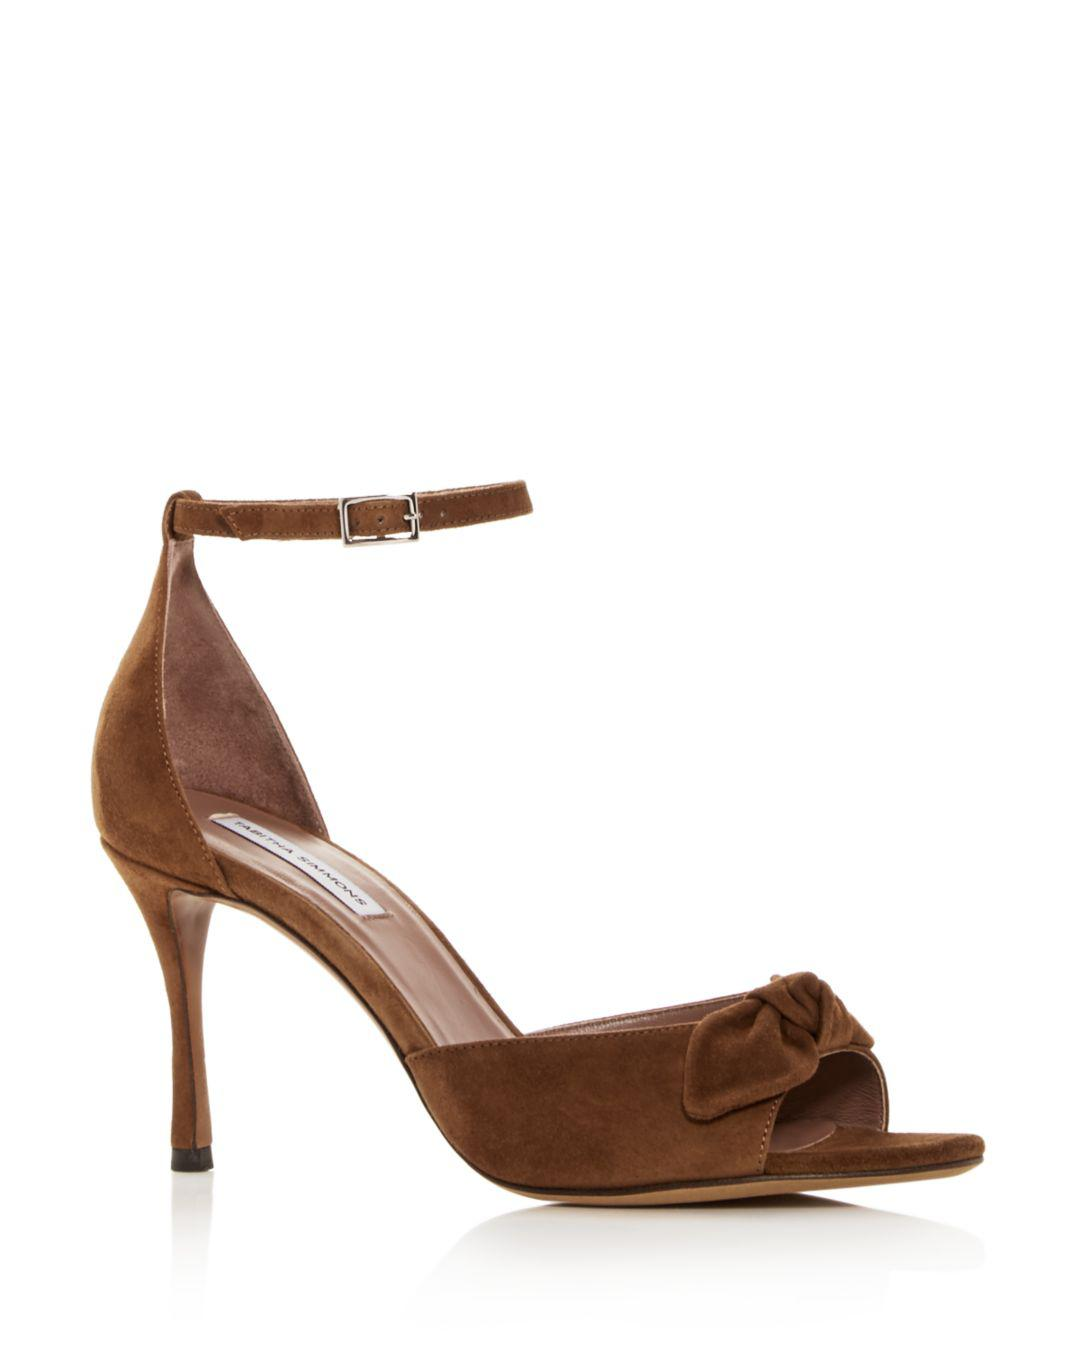 buy popular cc069 d8665 tabitha-simmons-Brown-Womens-Mimmi-Suede-High-heel-Sandals.jpeg